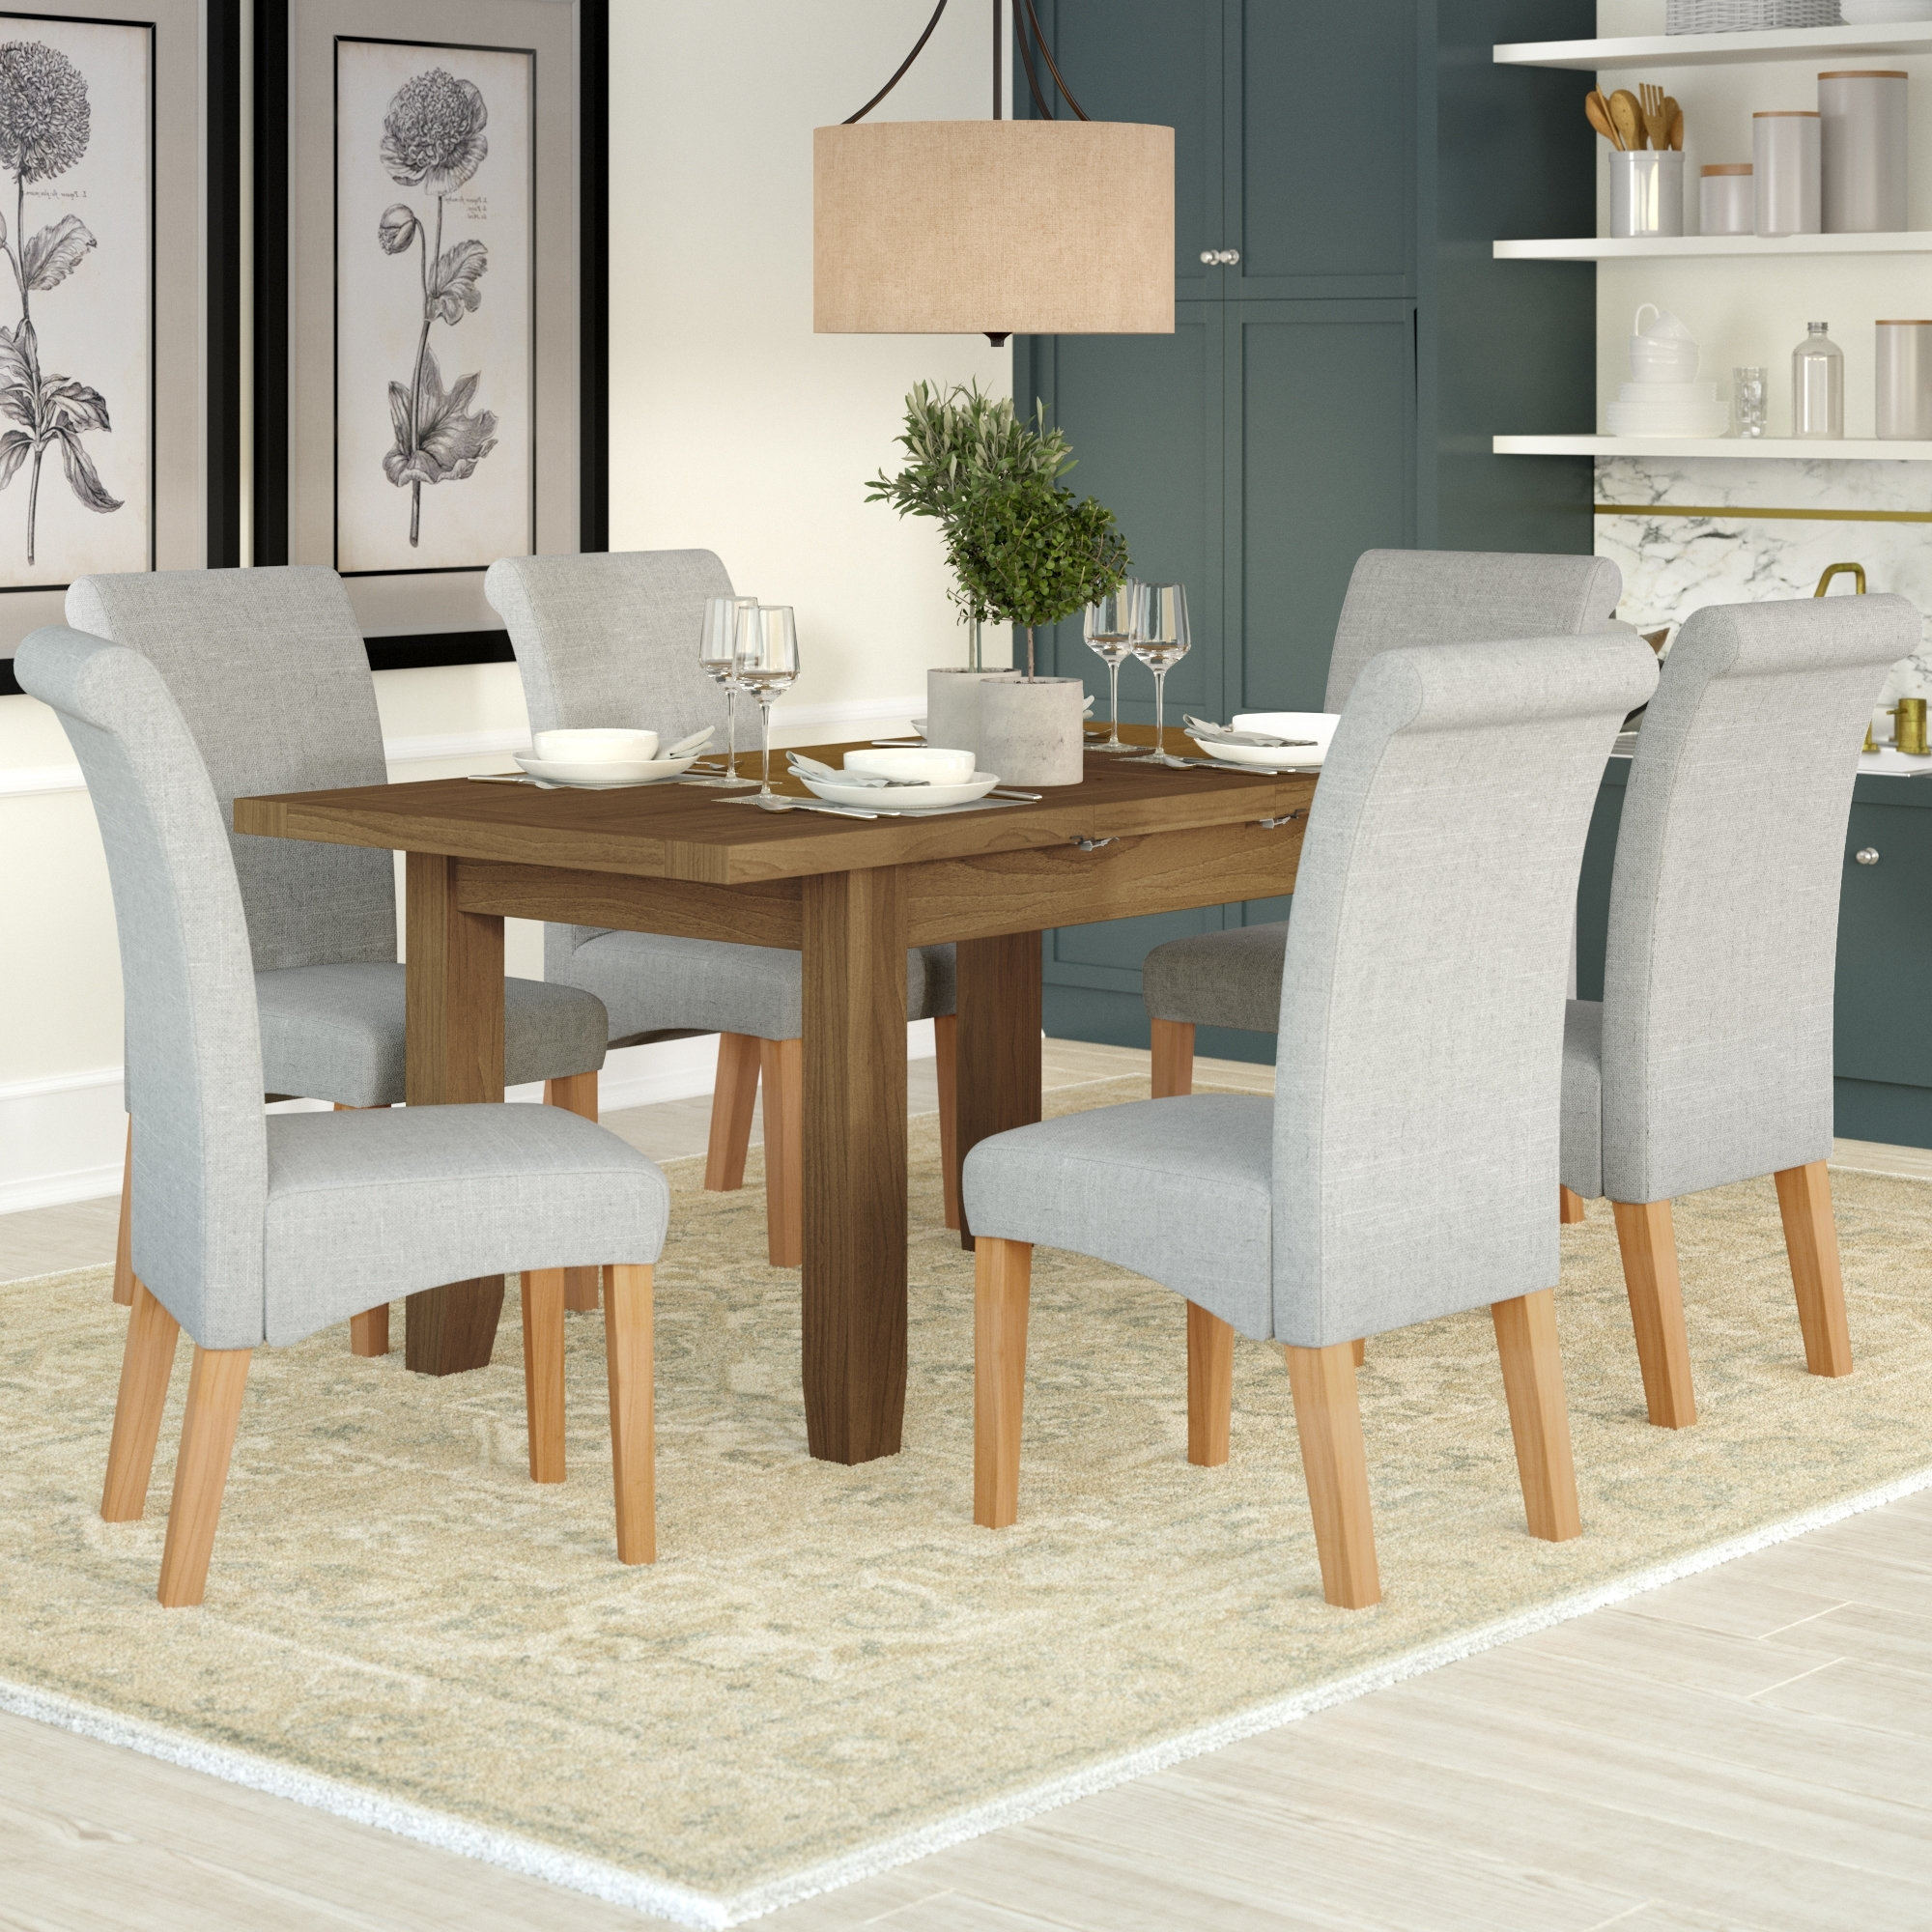 Three Posts Berwick Extendable Dining Table And 6 Chairs & Reviews Intended For Most Current Extendable Dining Tables 6 Chairs (View 22 of 25)